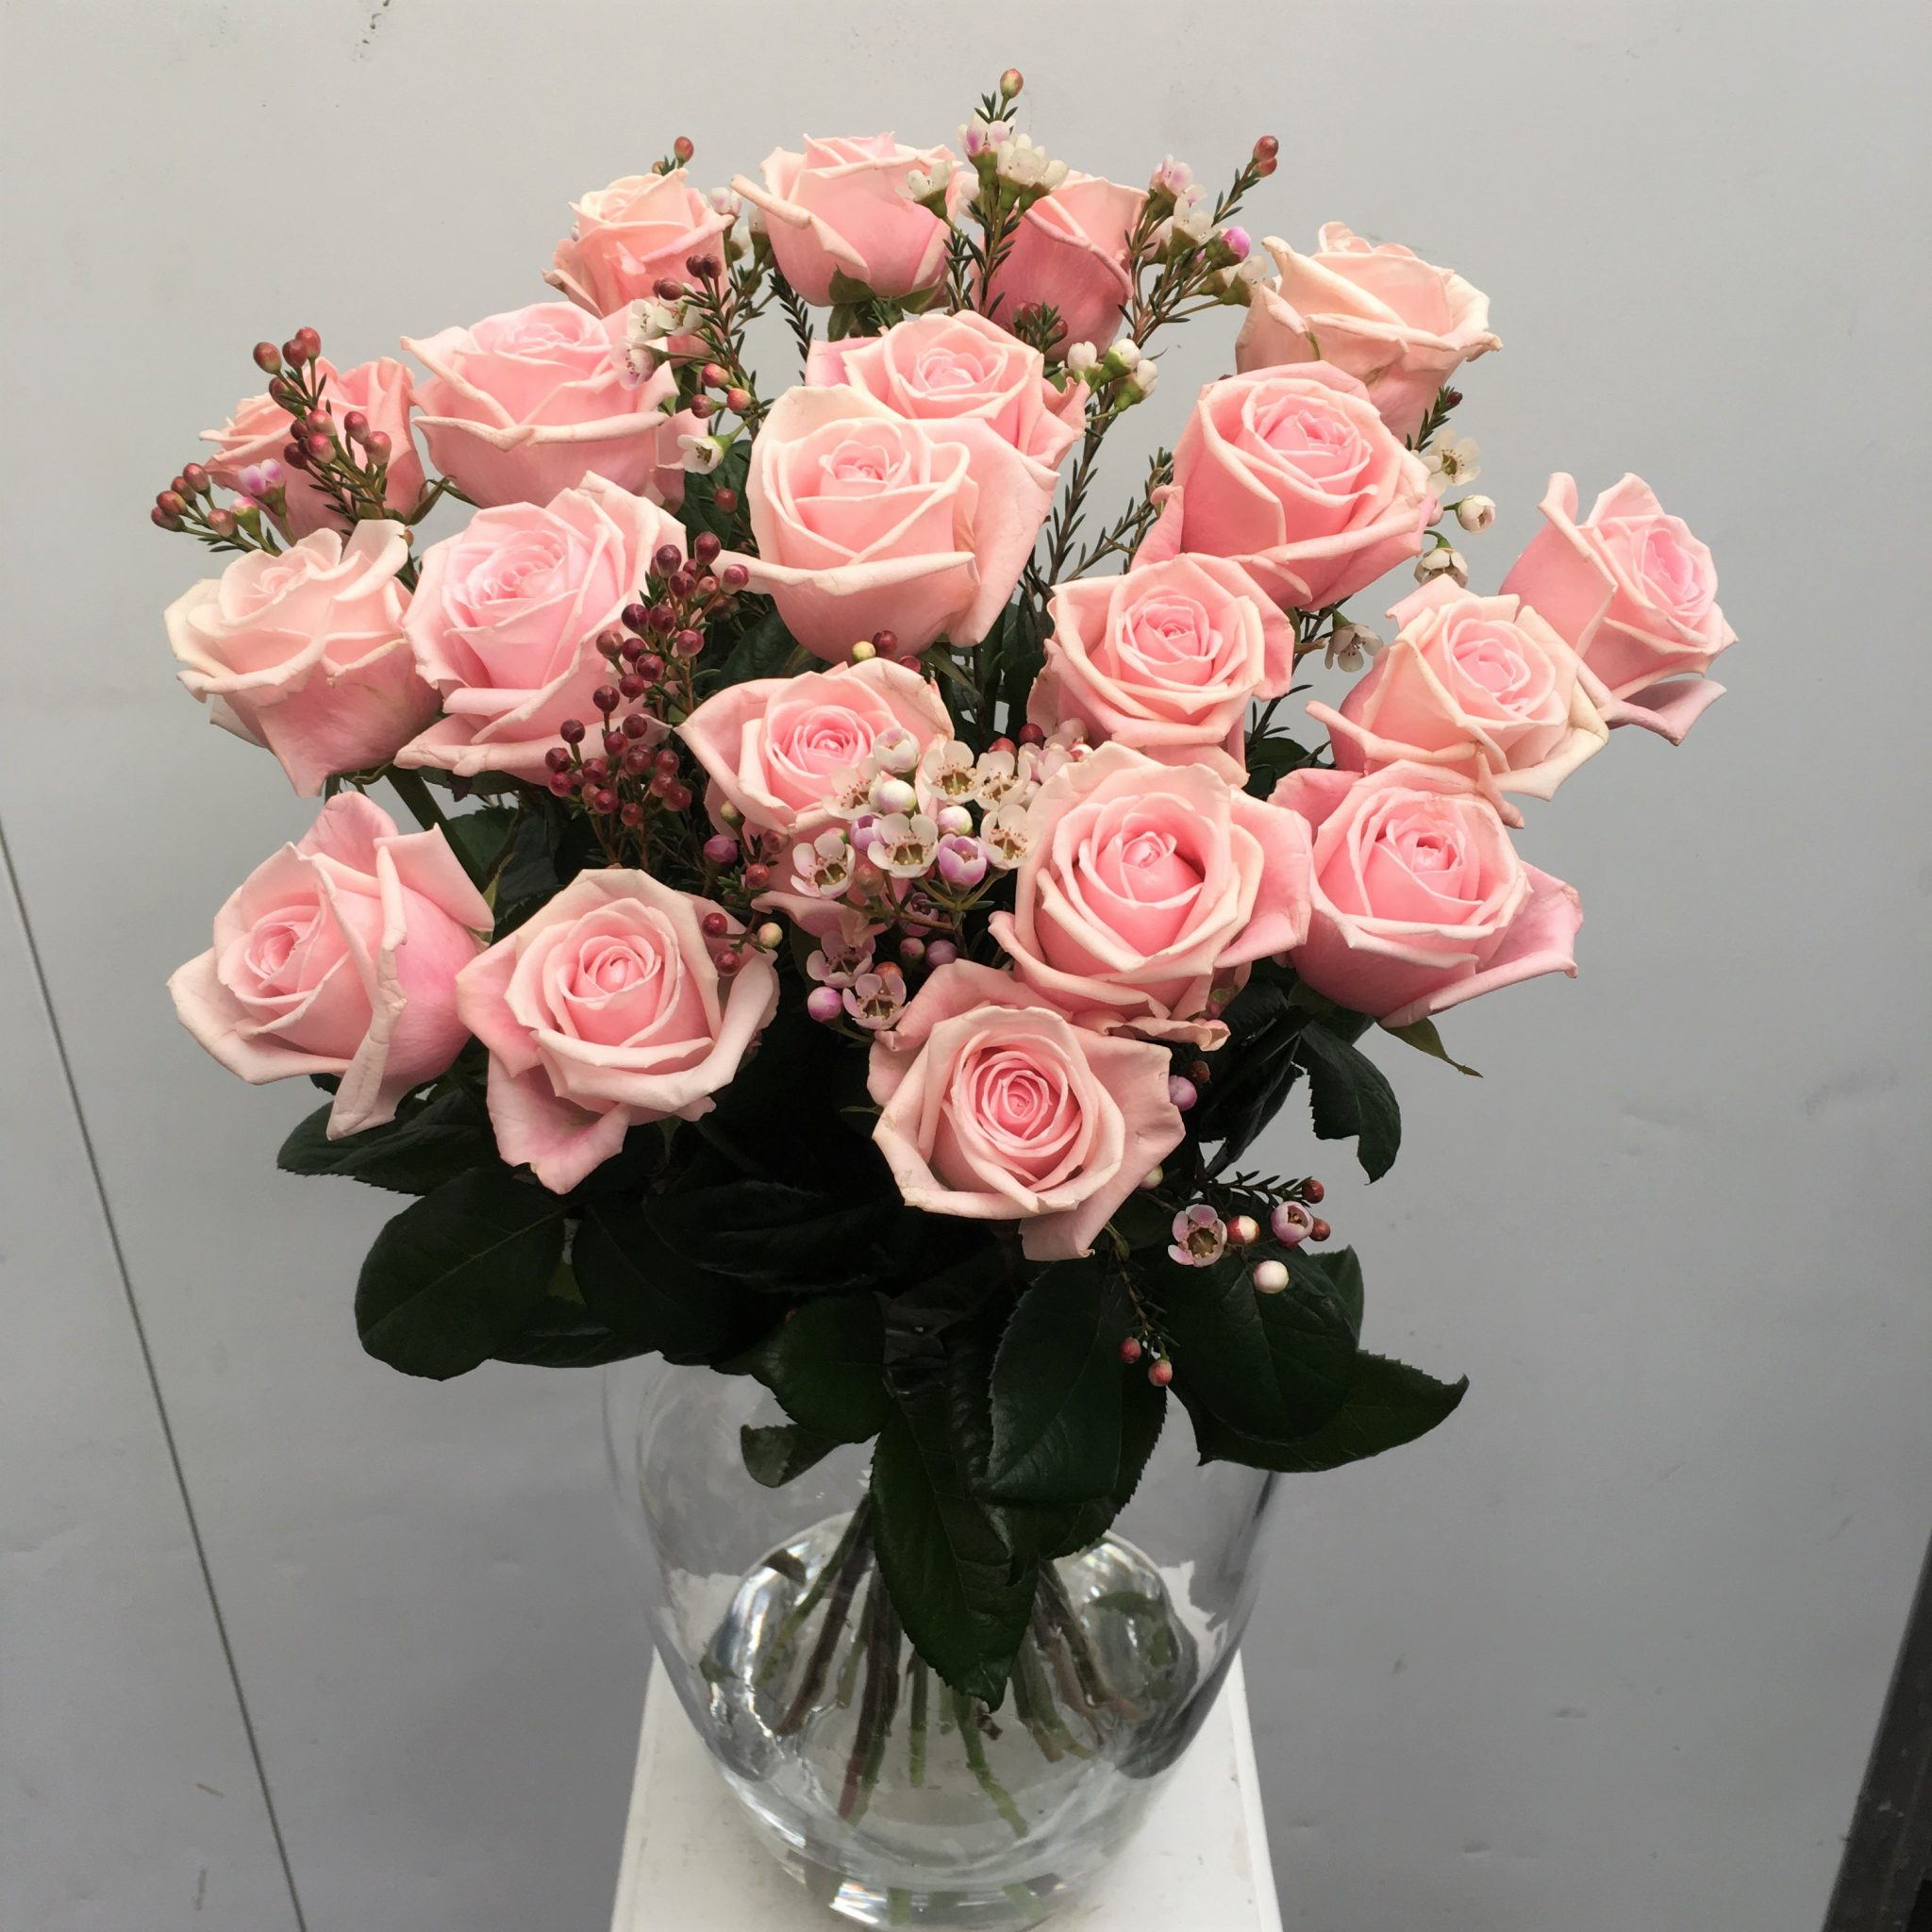 20 long stem pink roses in a vase in a vase pink roses with wax flower floridaeventfo Choice Image